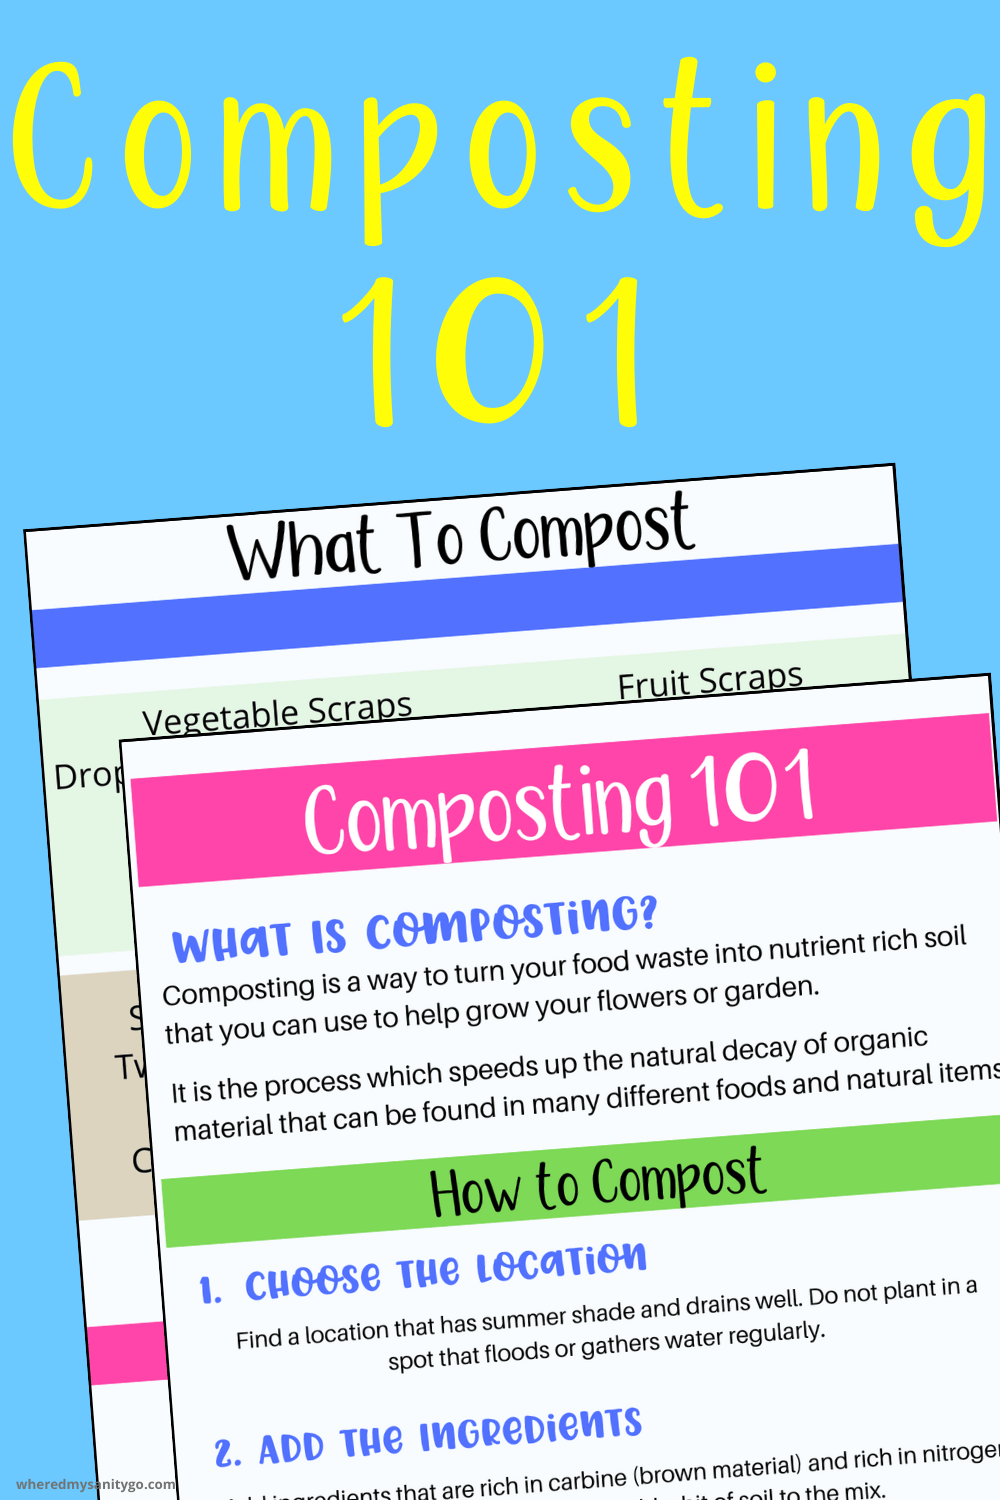 Composting 101 Benefits, Methods & How to Get Started